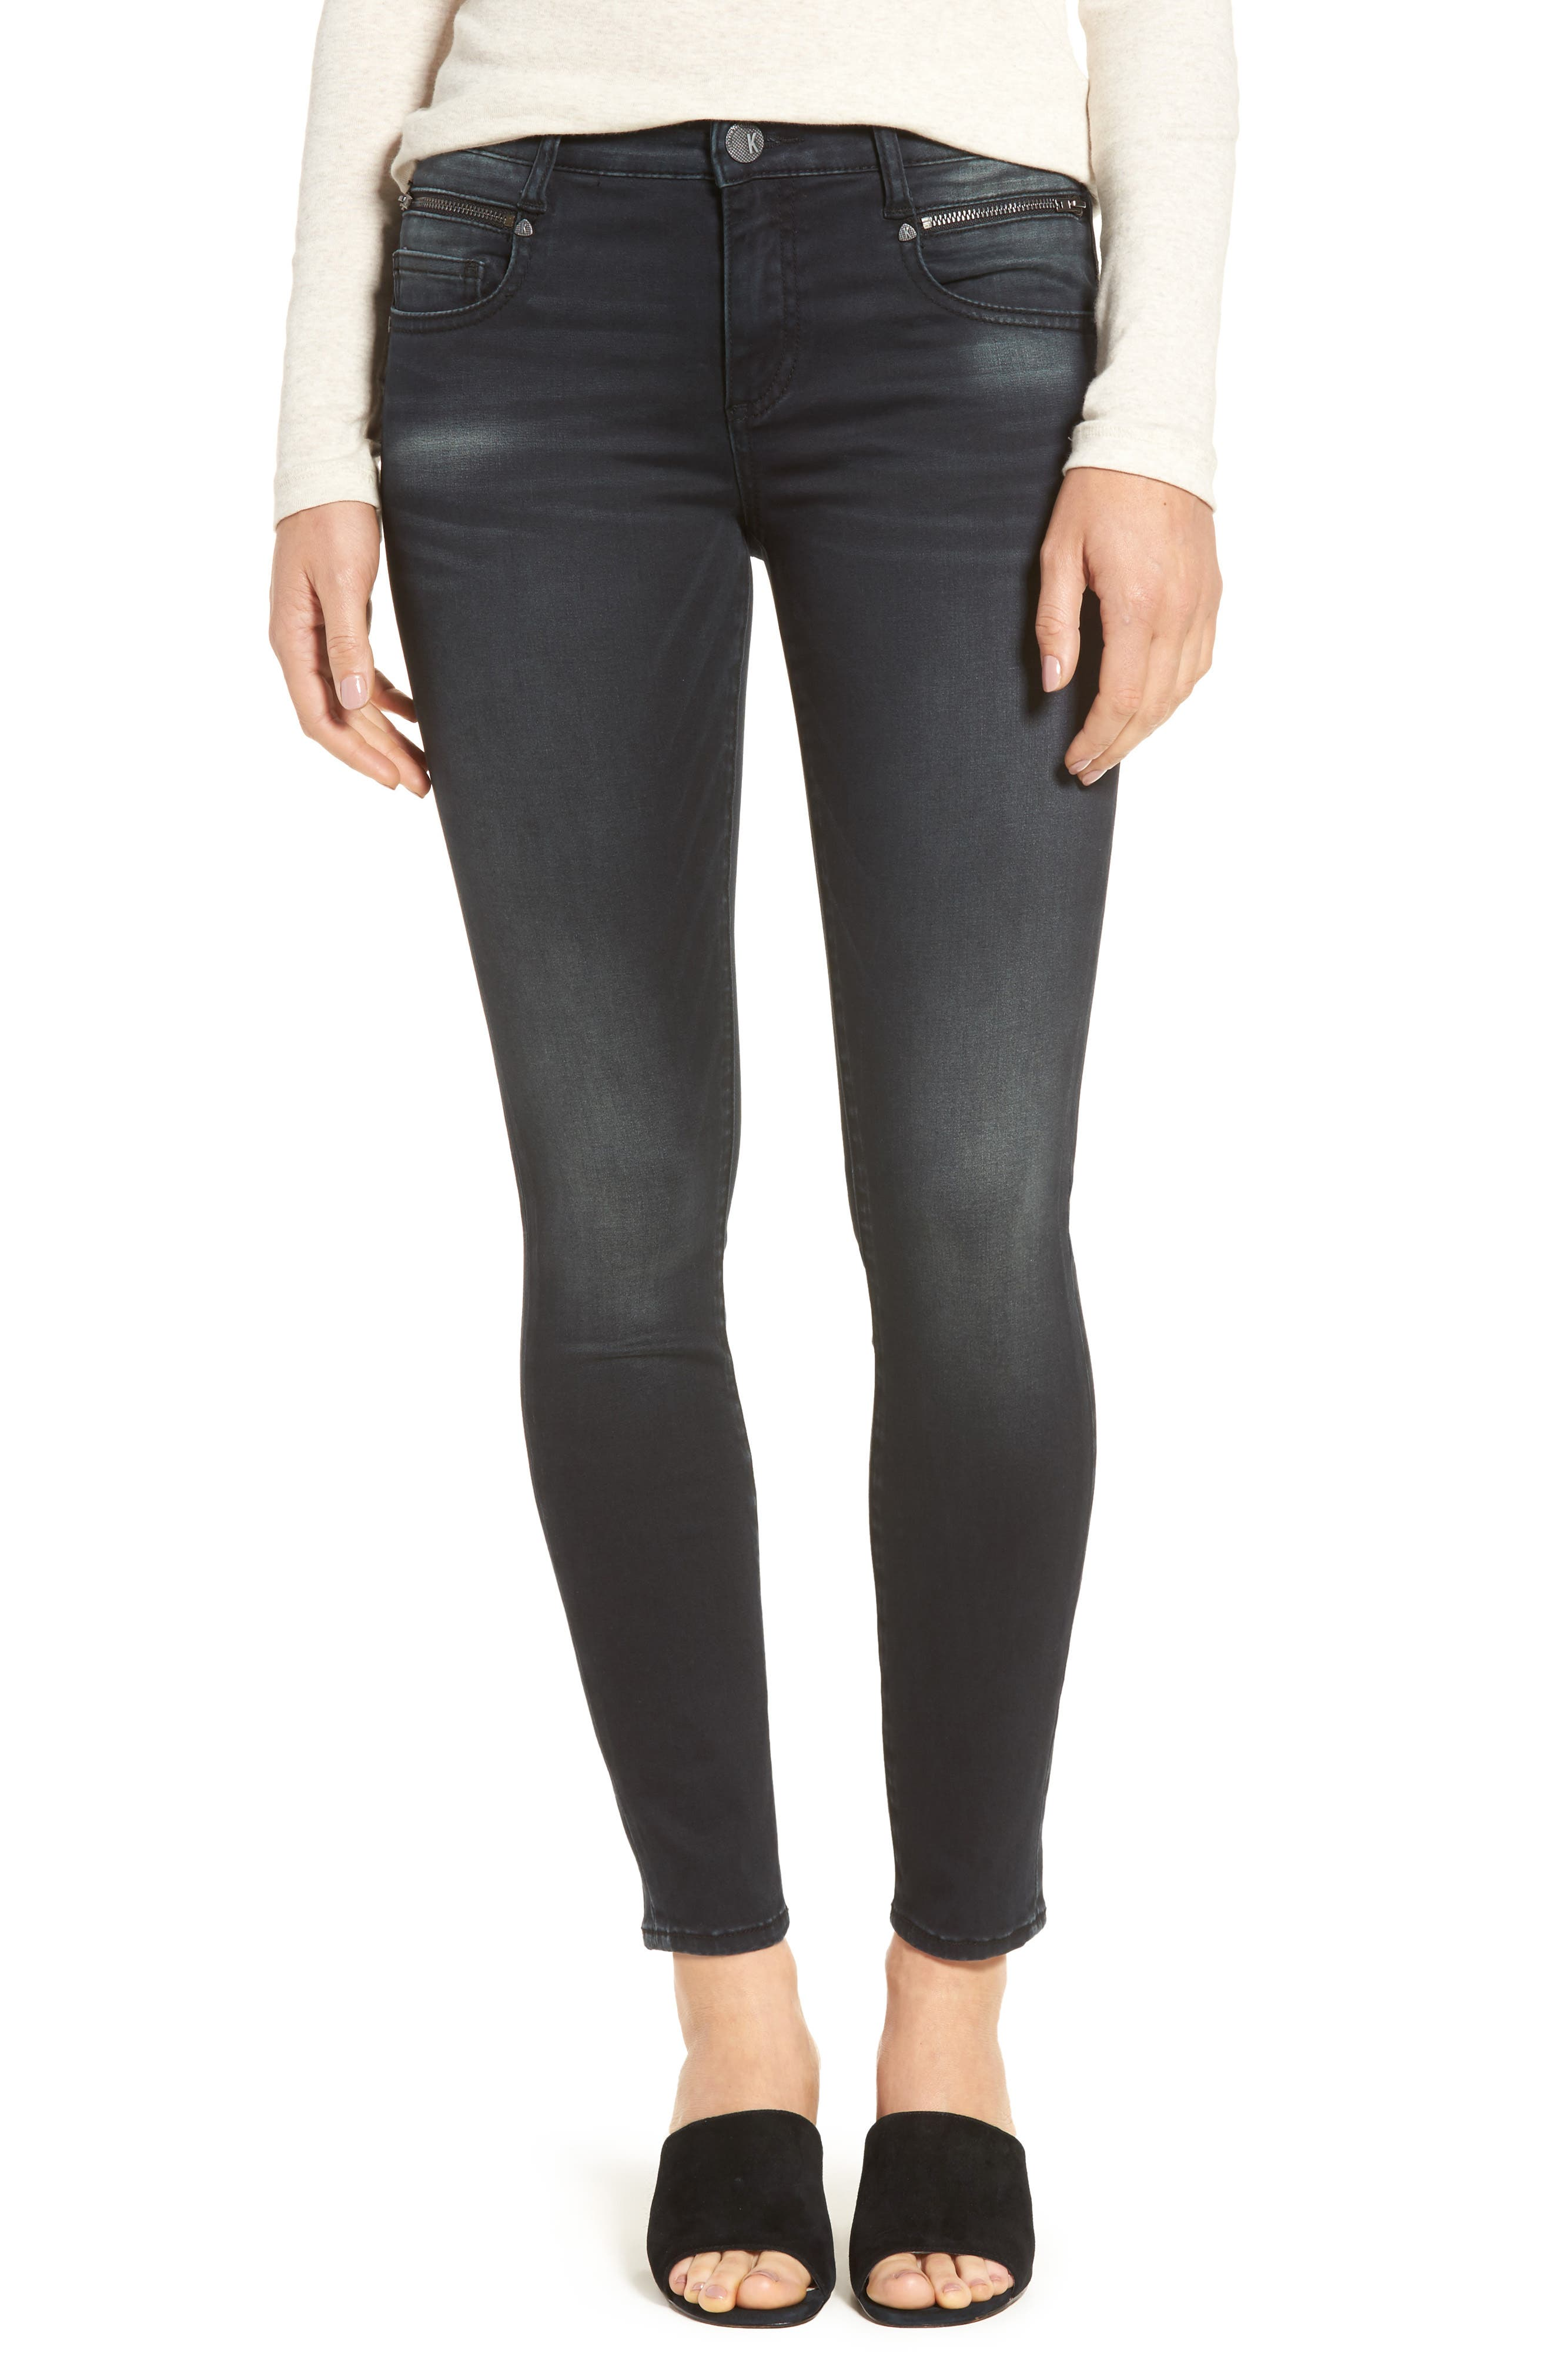 Alternate Image 1 Selected - KUT from the Kloth Reese Skinny Ankle Jeans (Proven)